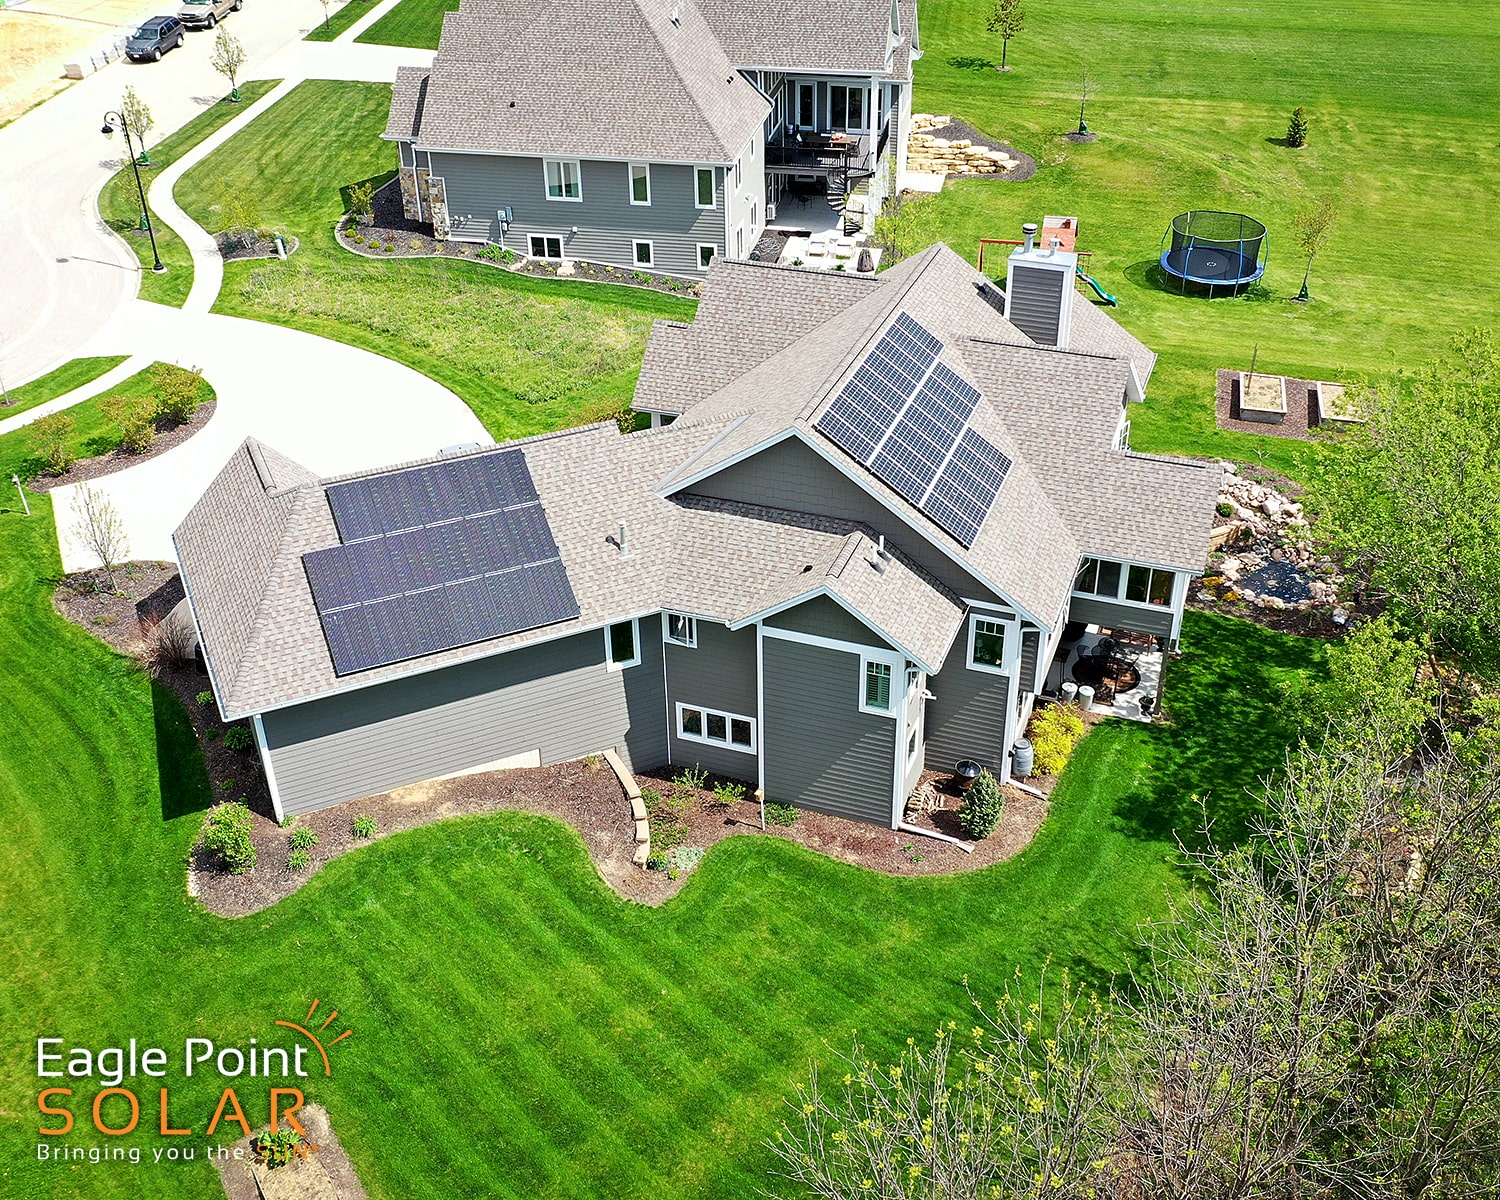 Photo of a residential roof mounted solar array